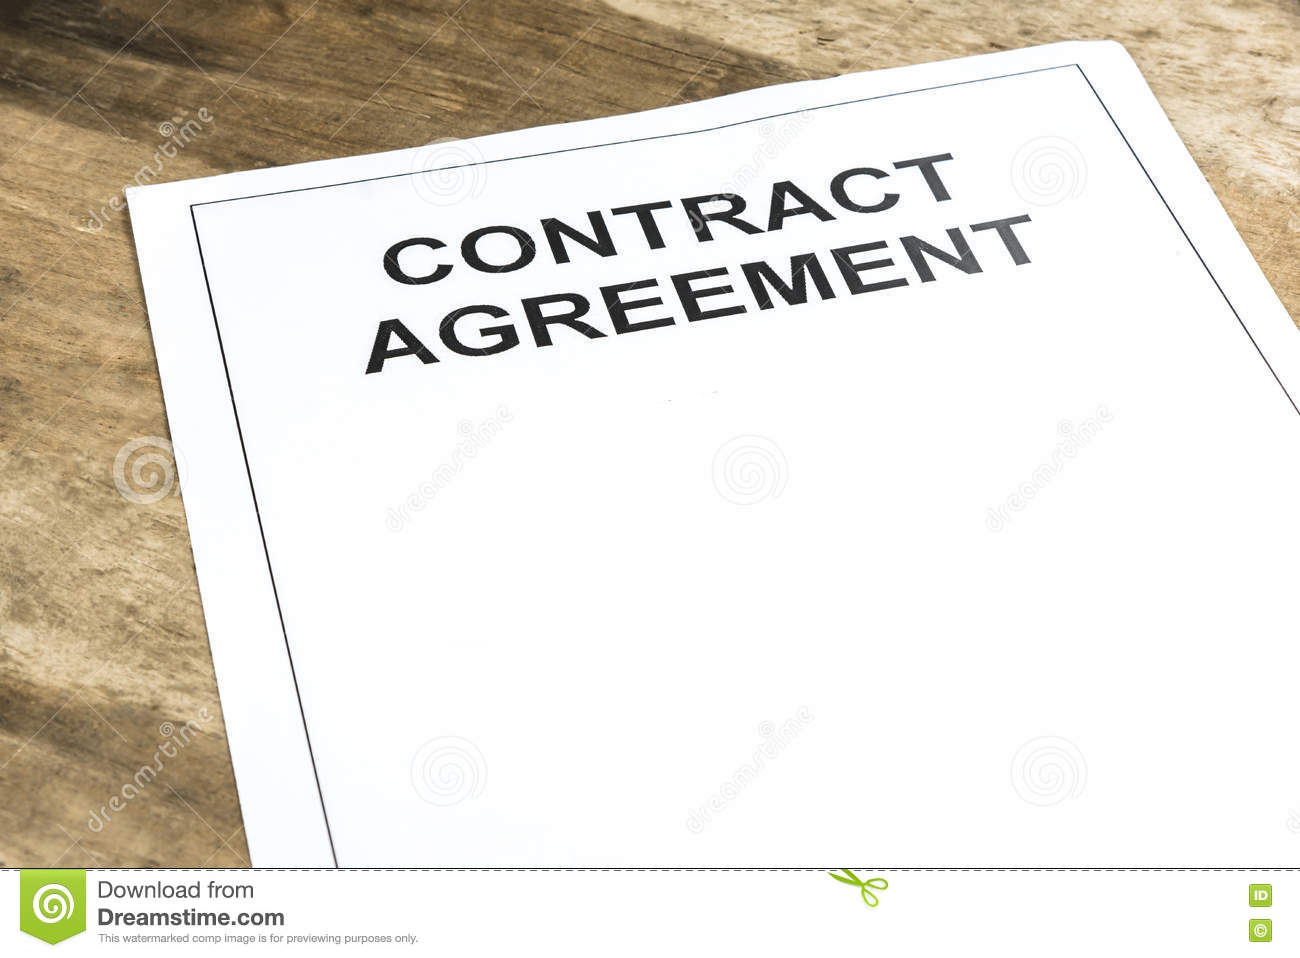 Contract agreement paper